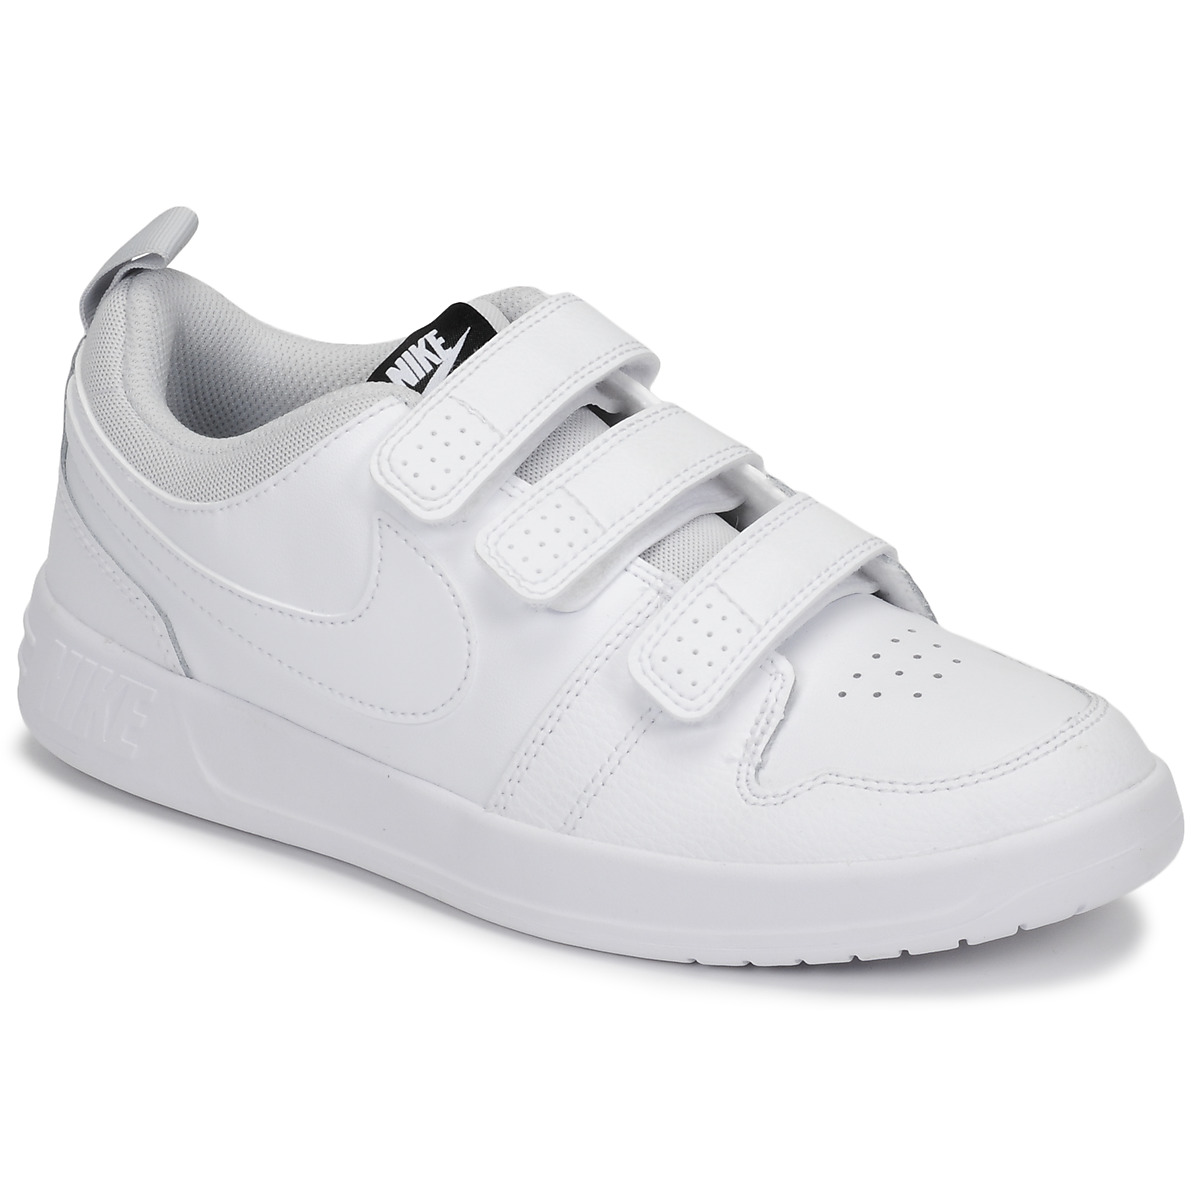 Desgracia sistemático Eficiente  Nike PICO 5 GRAND SCHOOL White - Fast delivery | Spartoo Europe ! - Shoes  Low top trainers Child 36,00 €